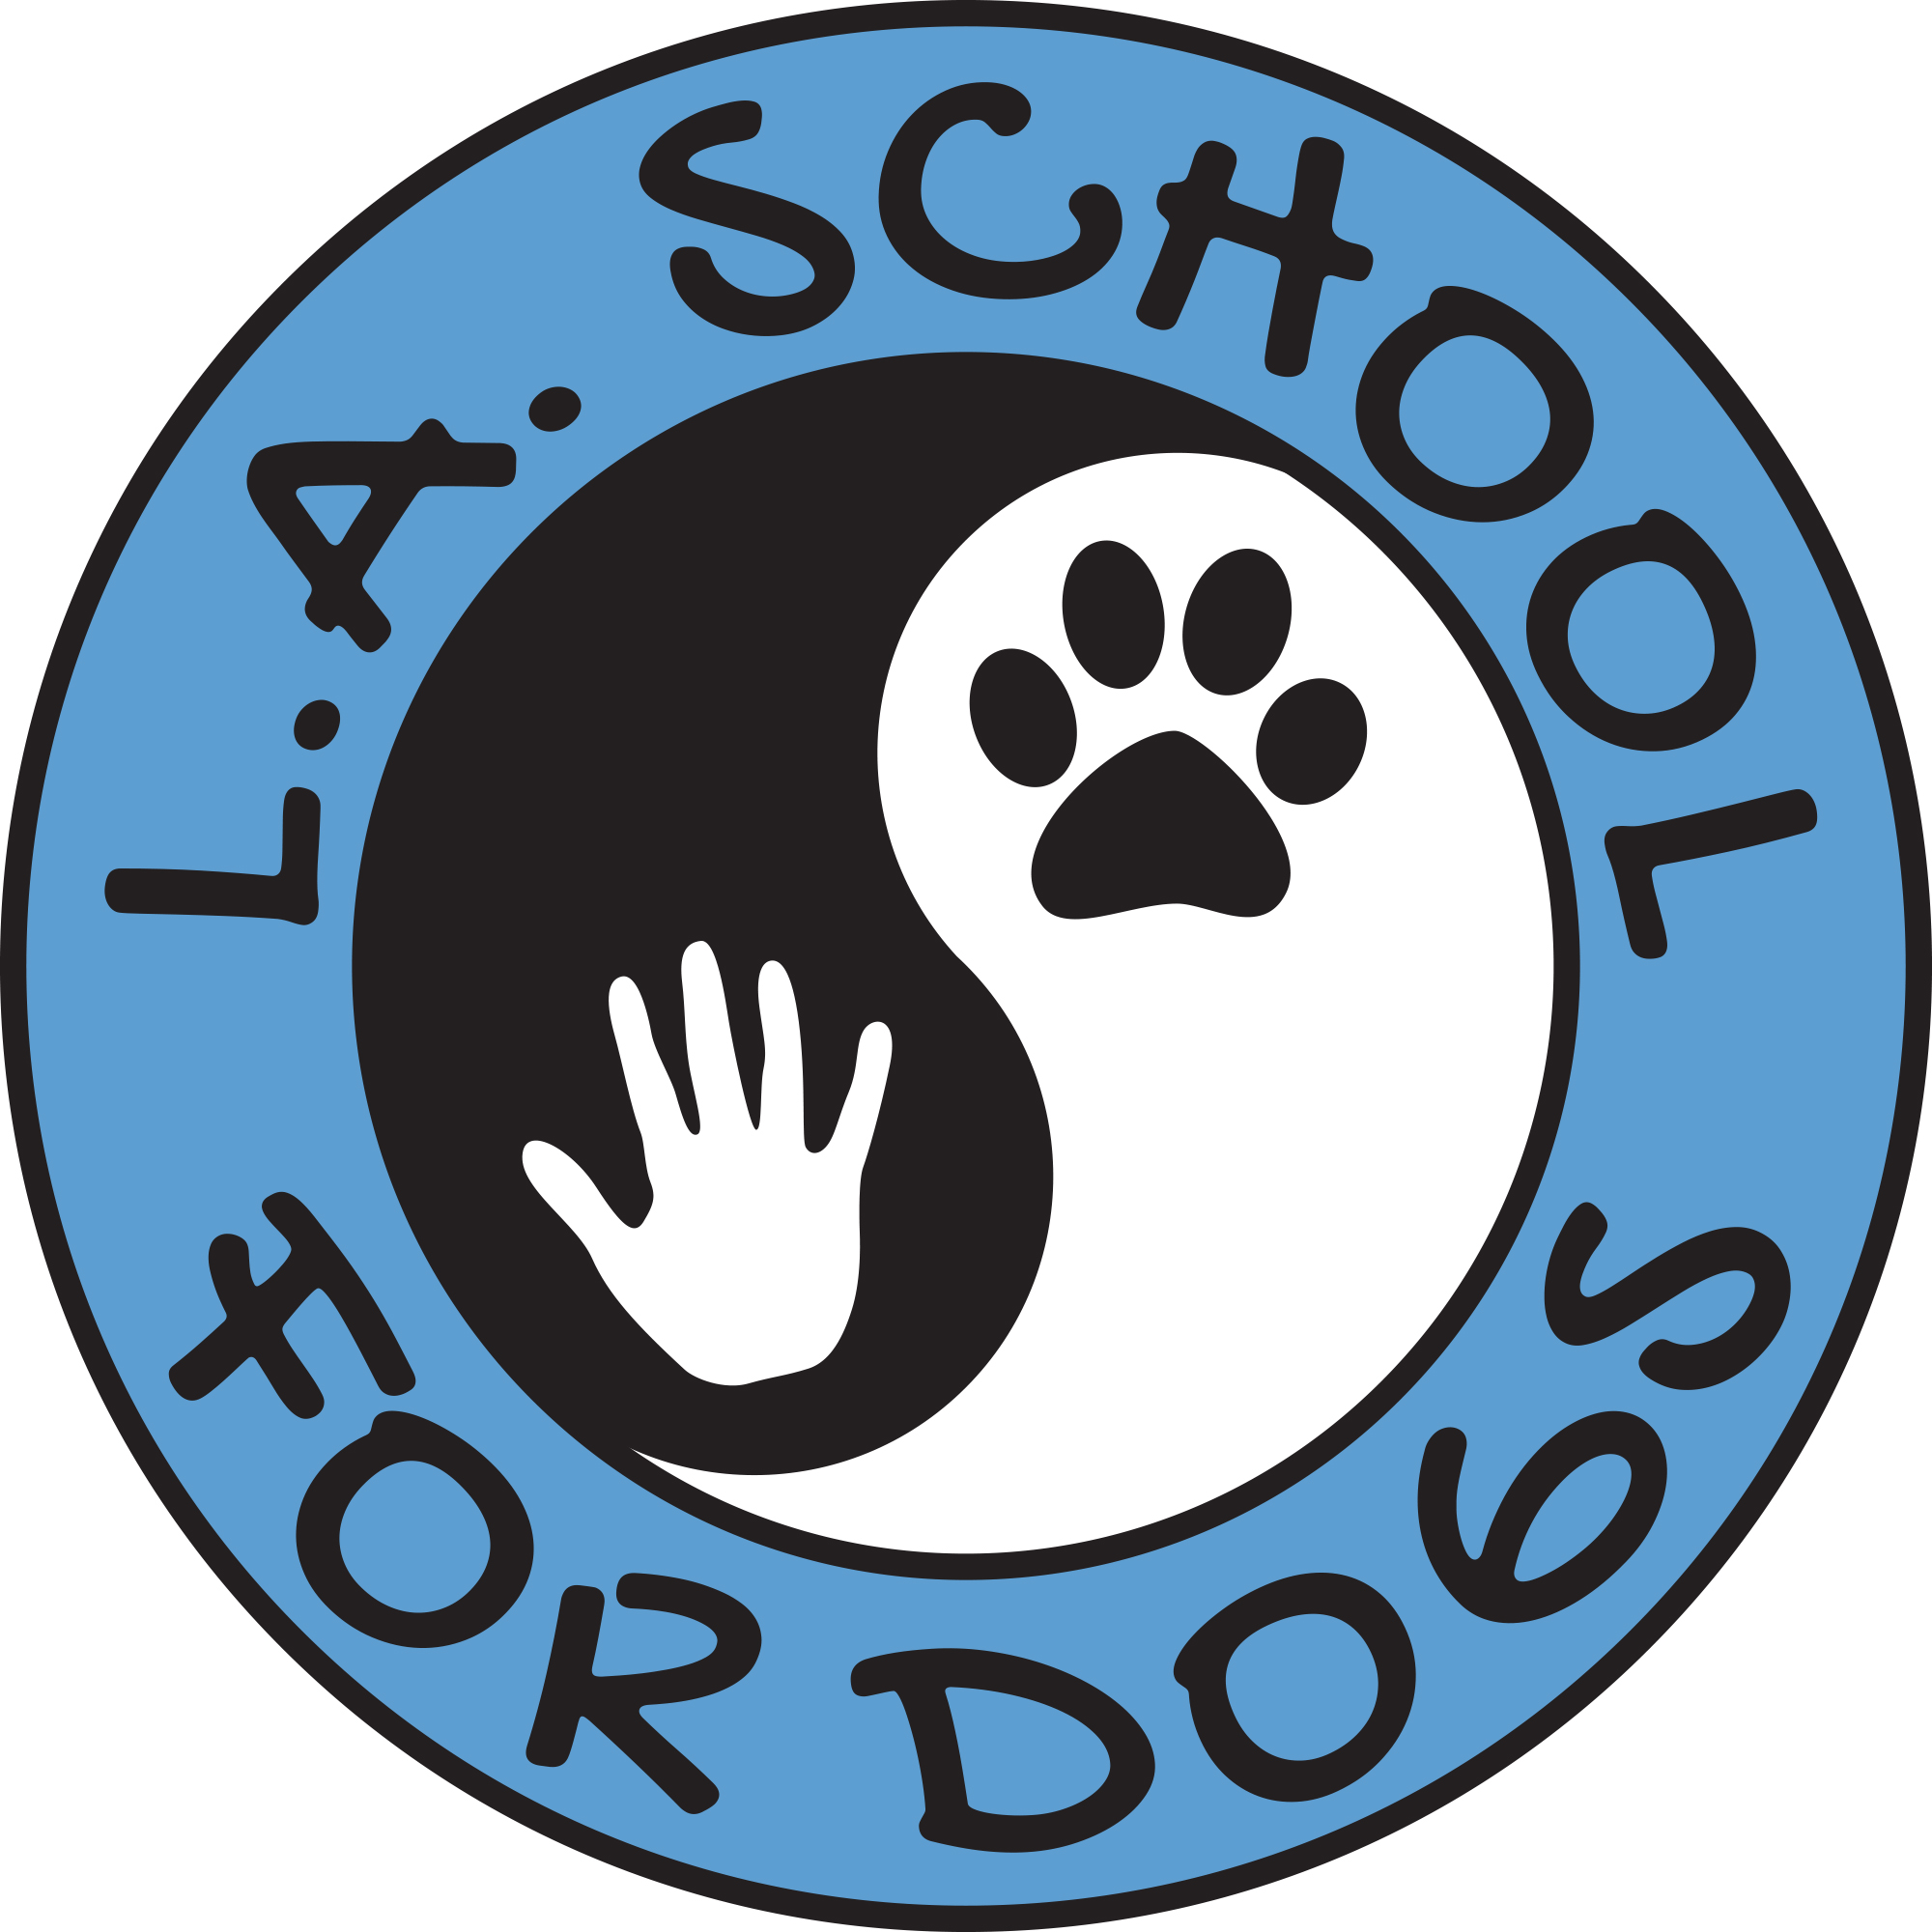 L.A. School for Dogs Members